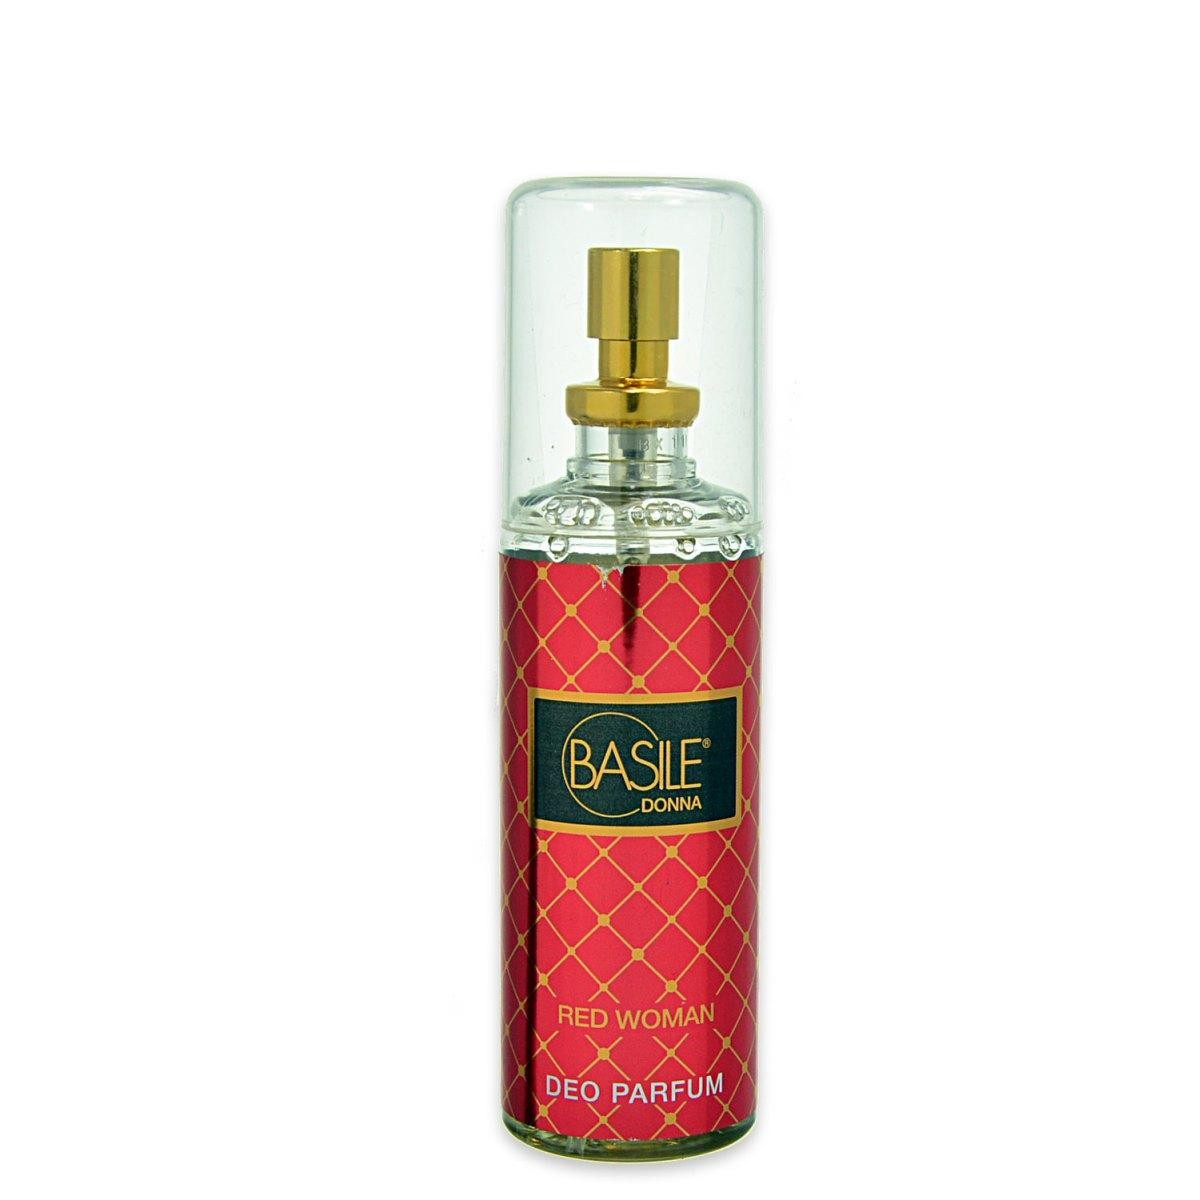 Basile Red Woman Deo Profumo 100 ml. Spray 07163857d4e